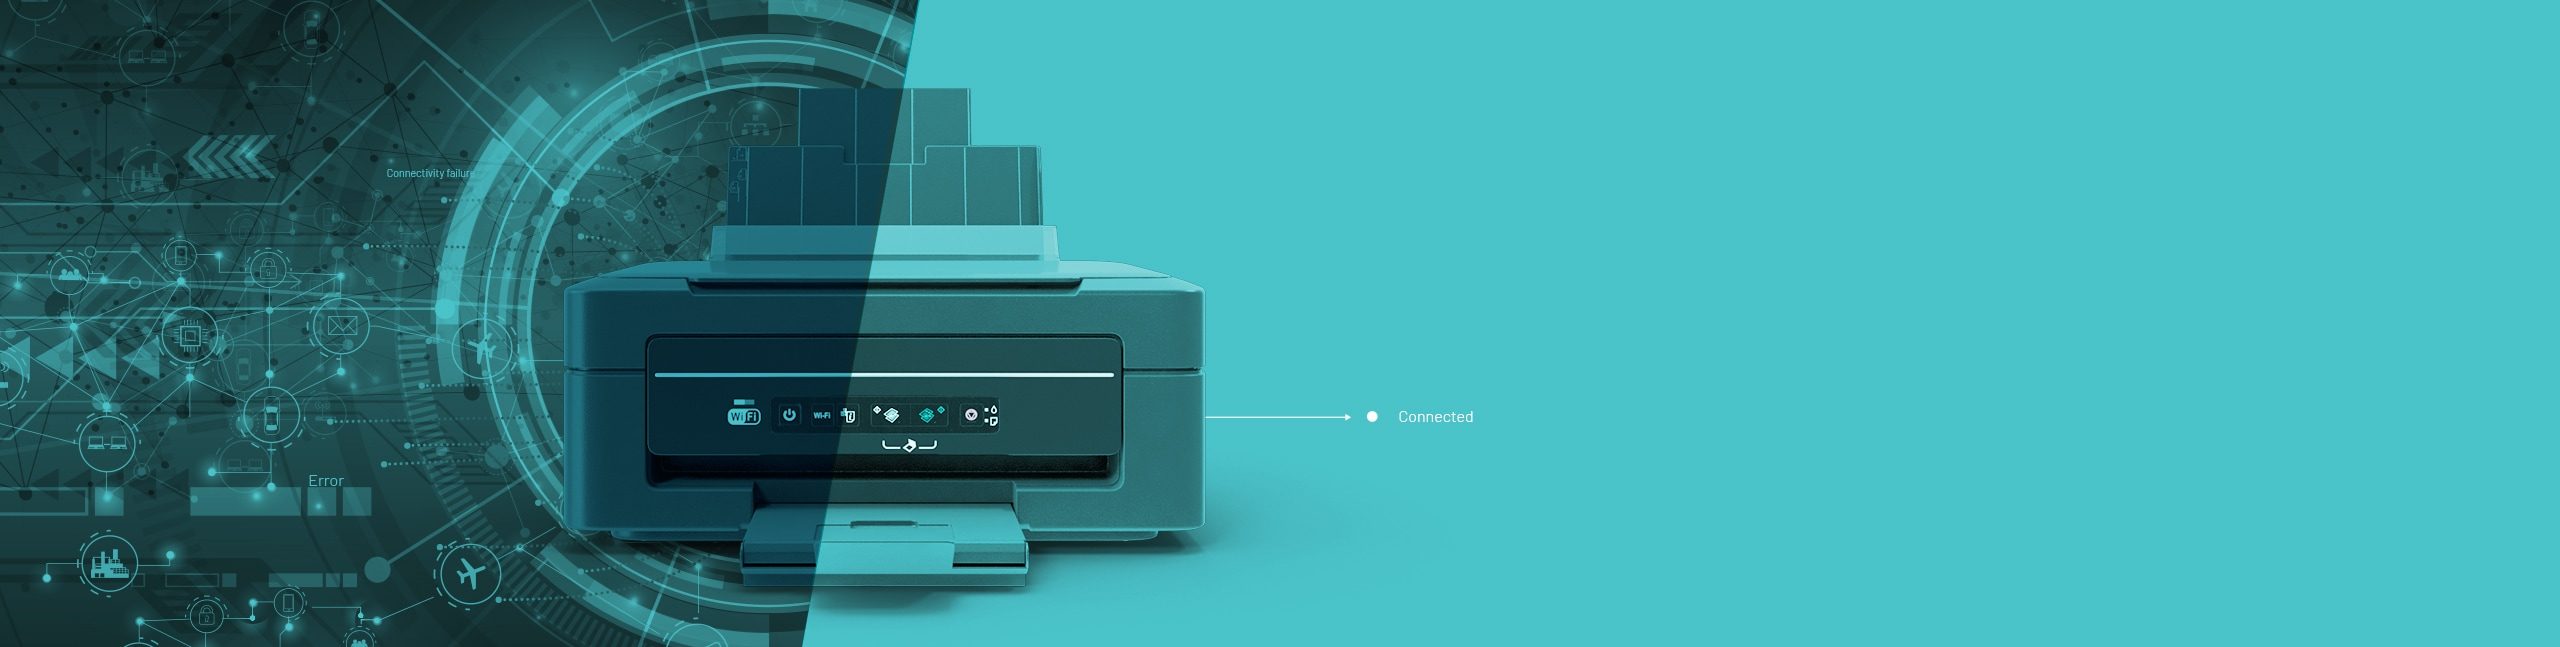 IoT Connected printer